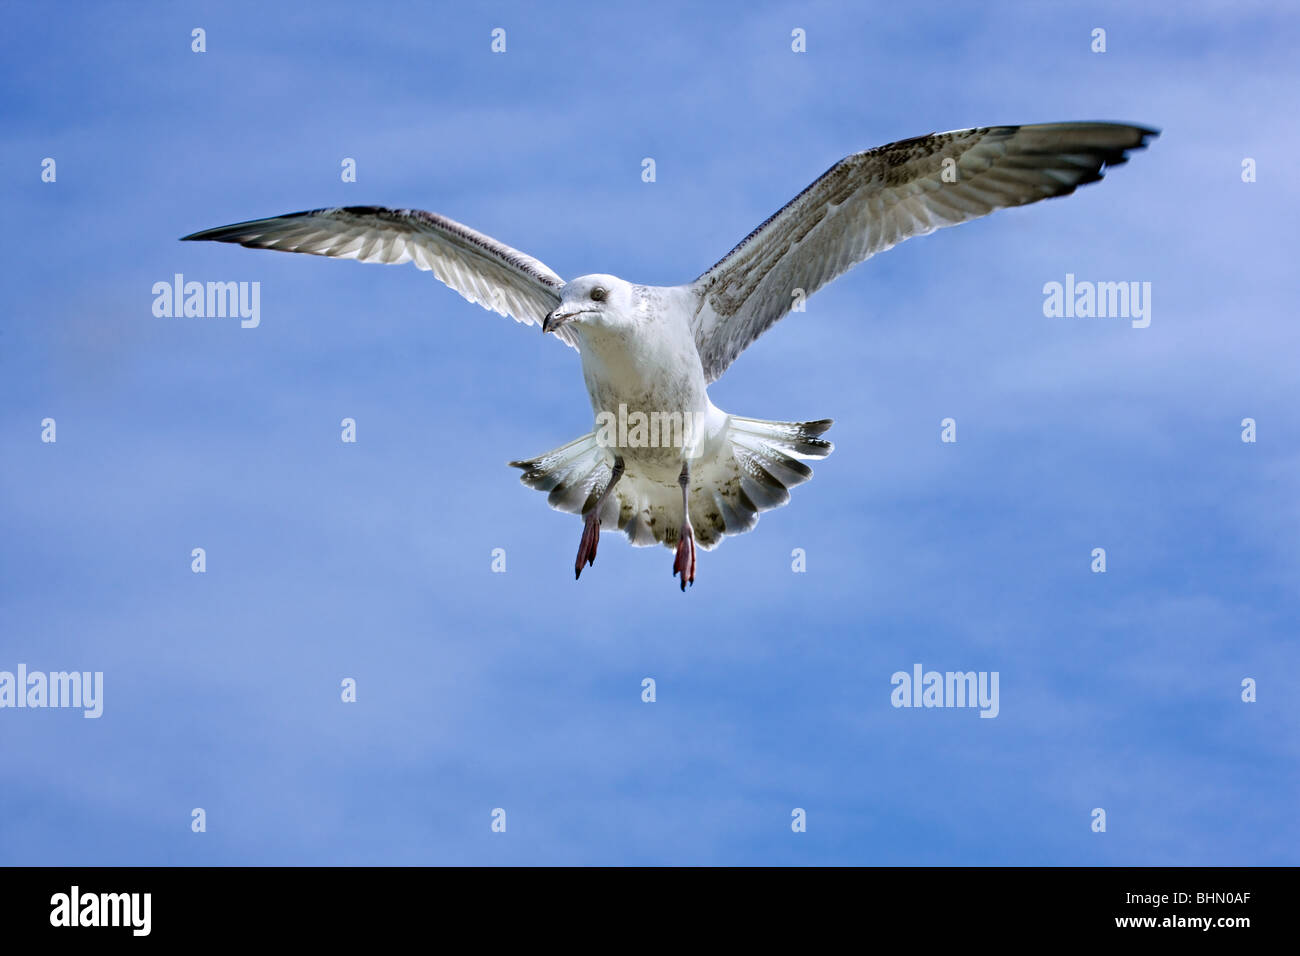 Herring gull (Larus argentatus) in flight against blue sky - Stock Image